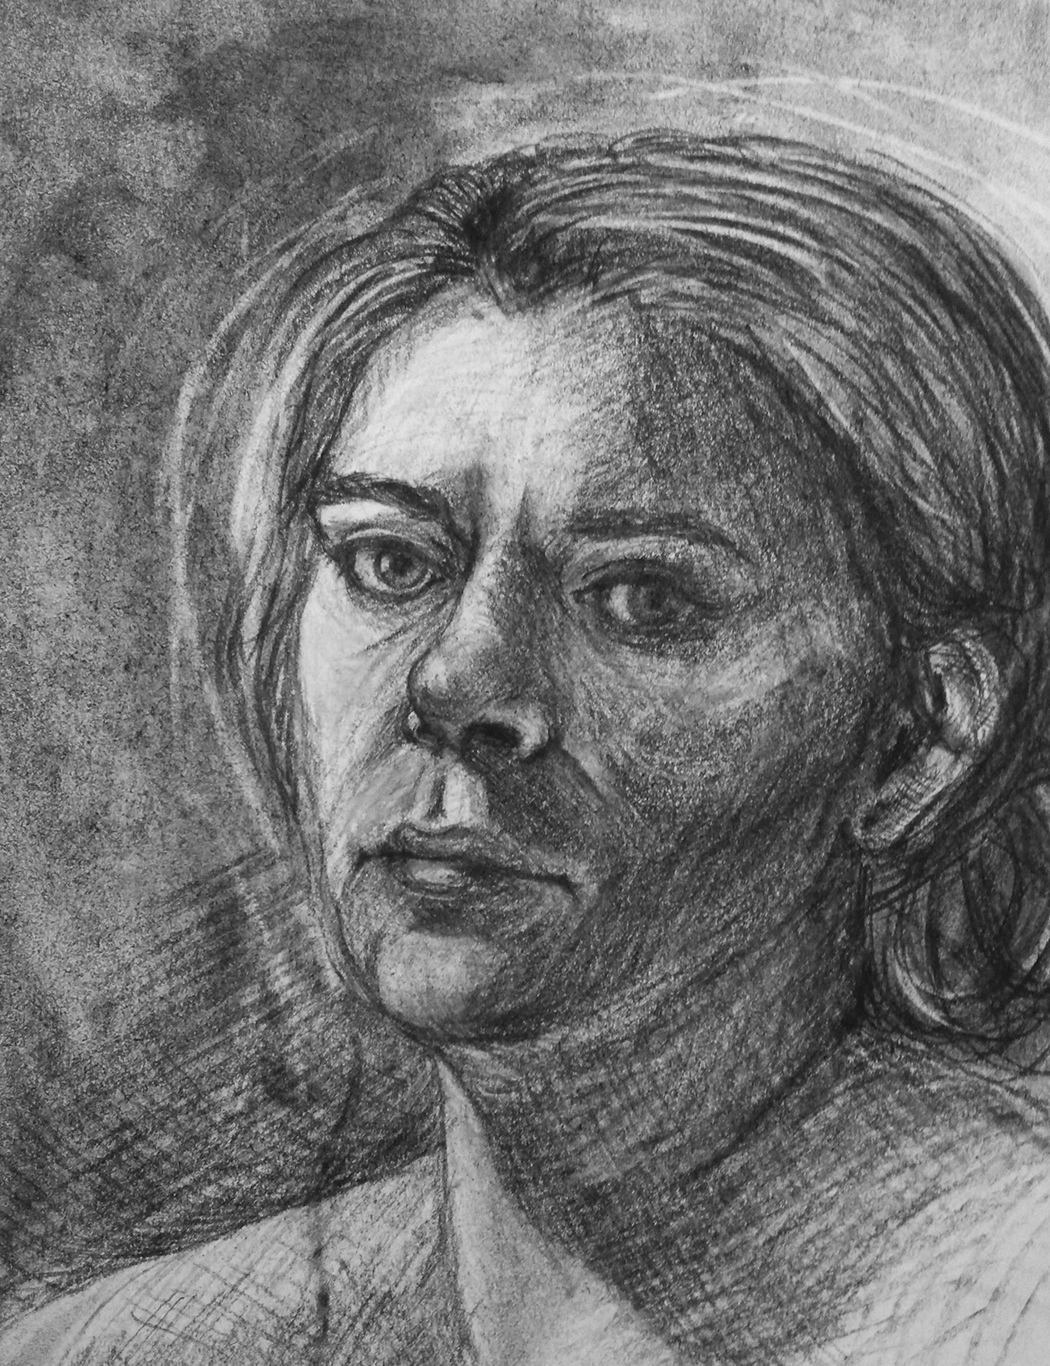 Charcoal Self-Portrait, Nikoletta T